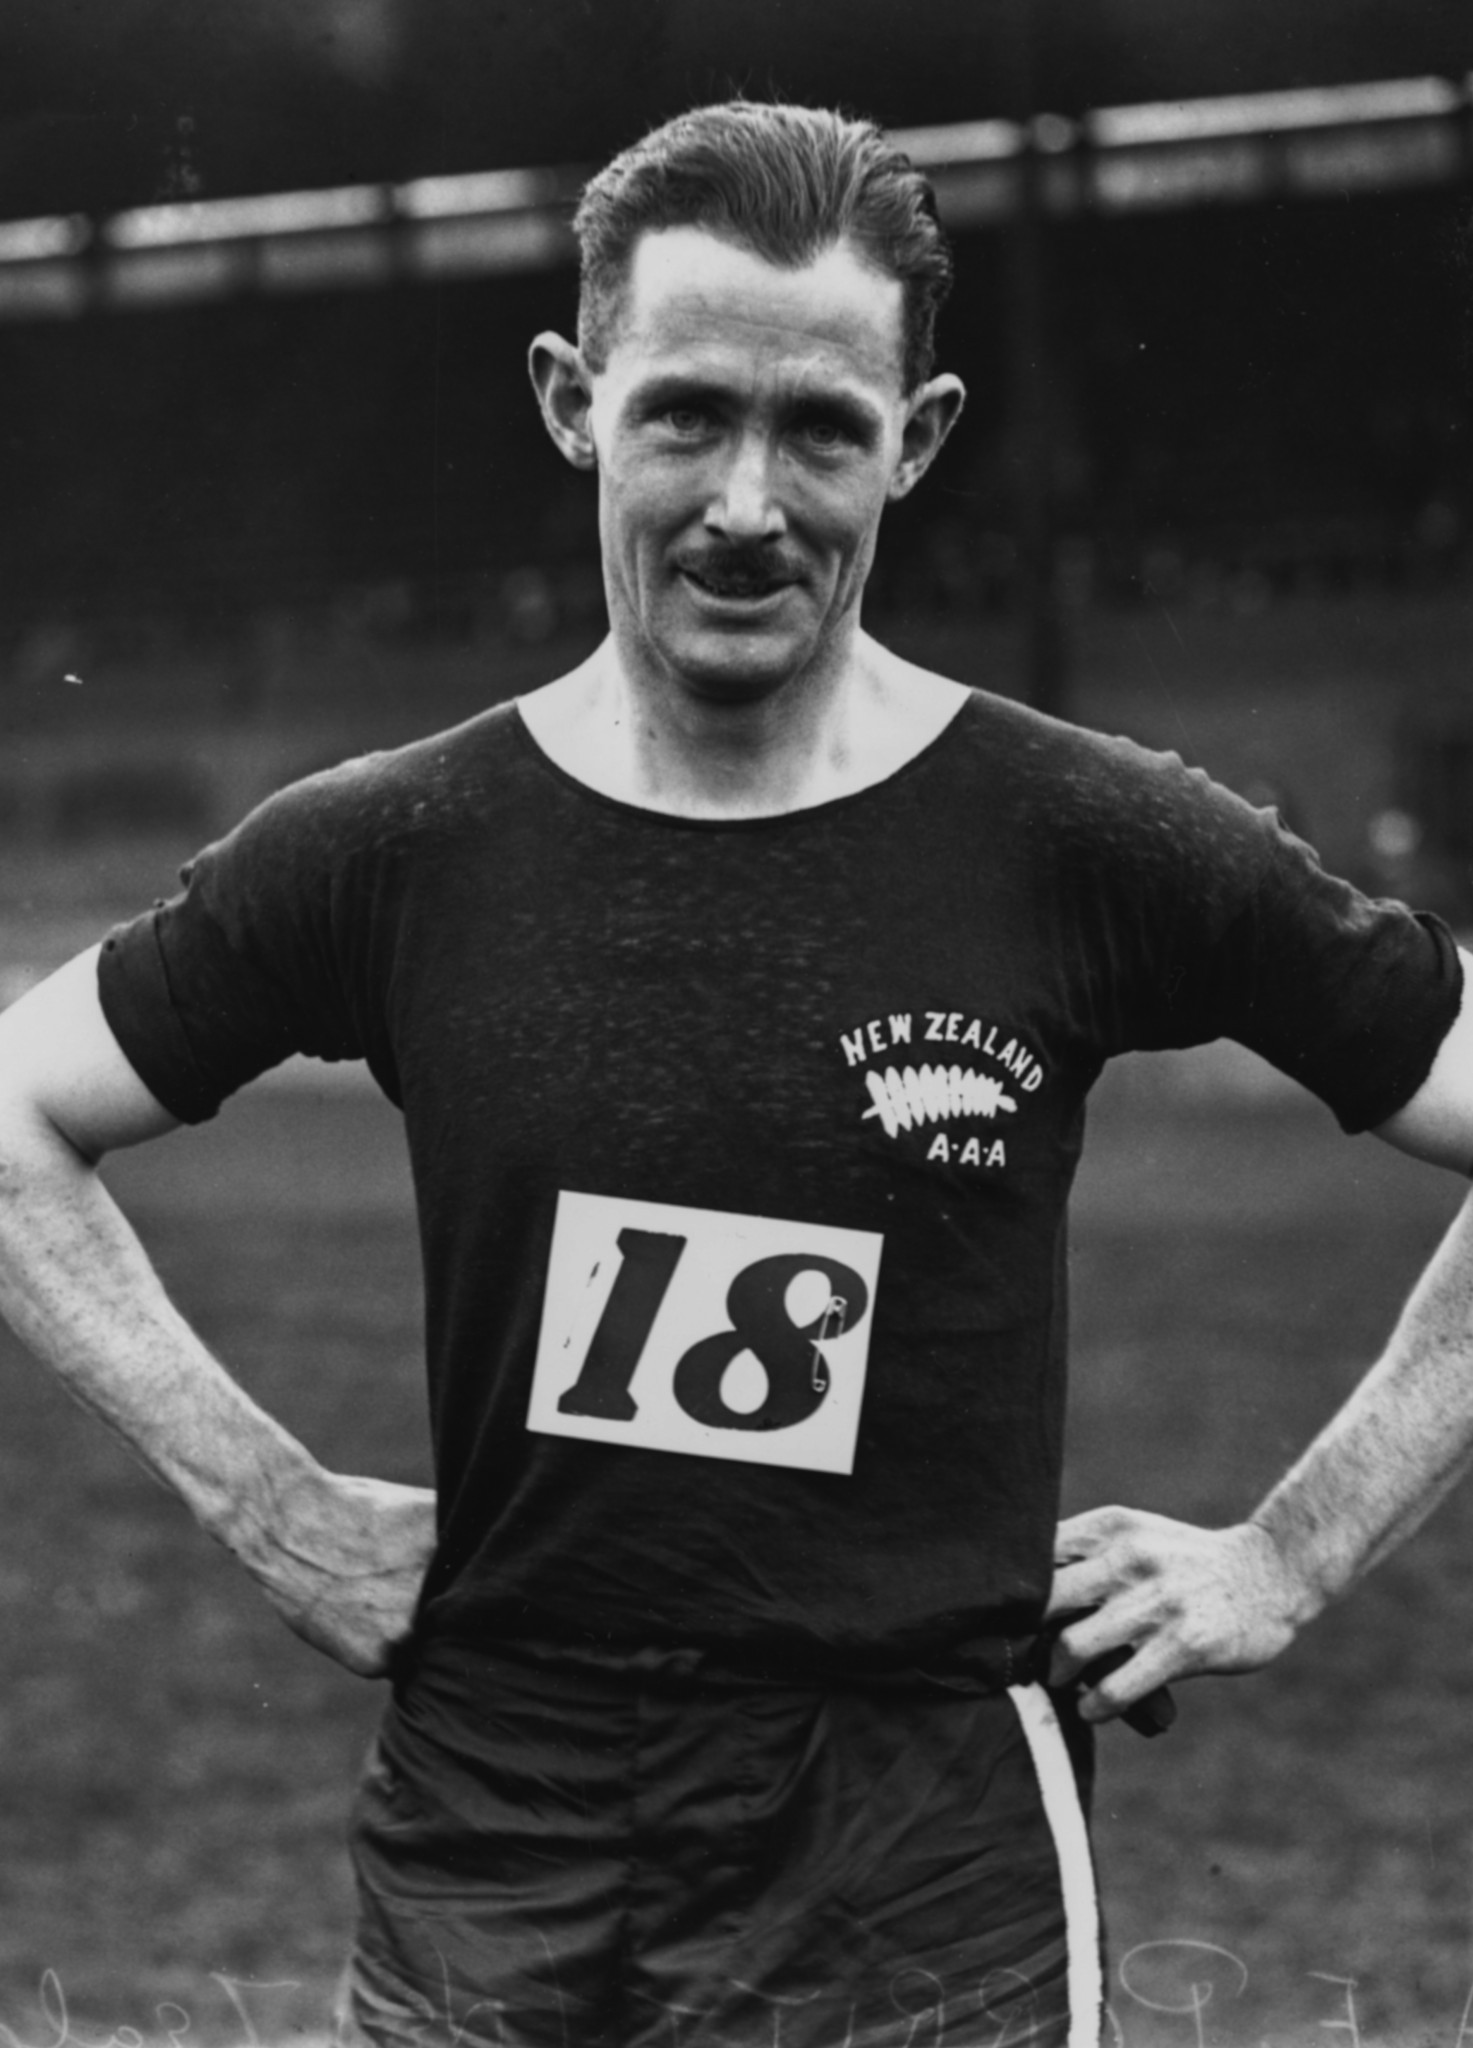 Sir Arthur Porritt, 100m Gold at the 1924 Summer Student World Championships. © Central Press/Hulton Archive/Getty Images